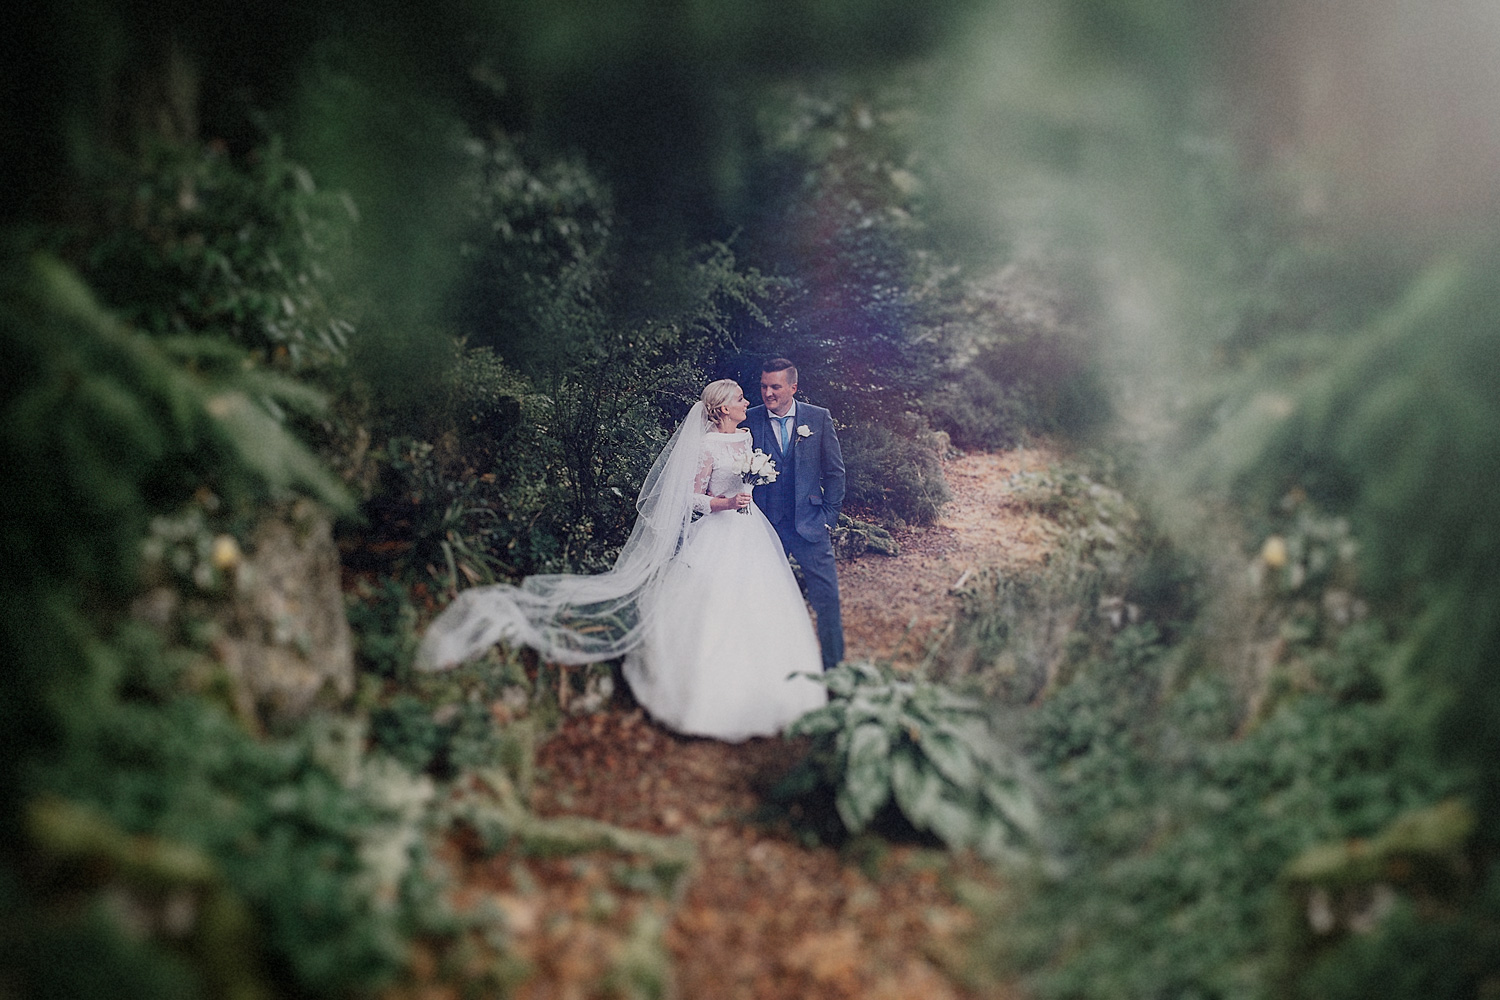 Wedding Photography at St Augustines Priory Kent by Chris Deller Photography